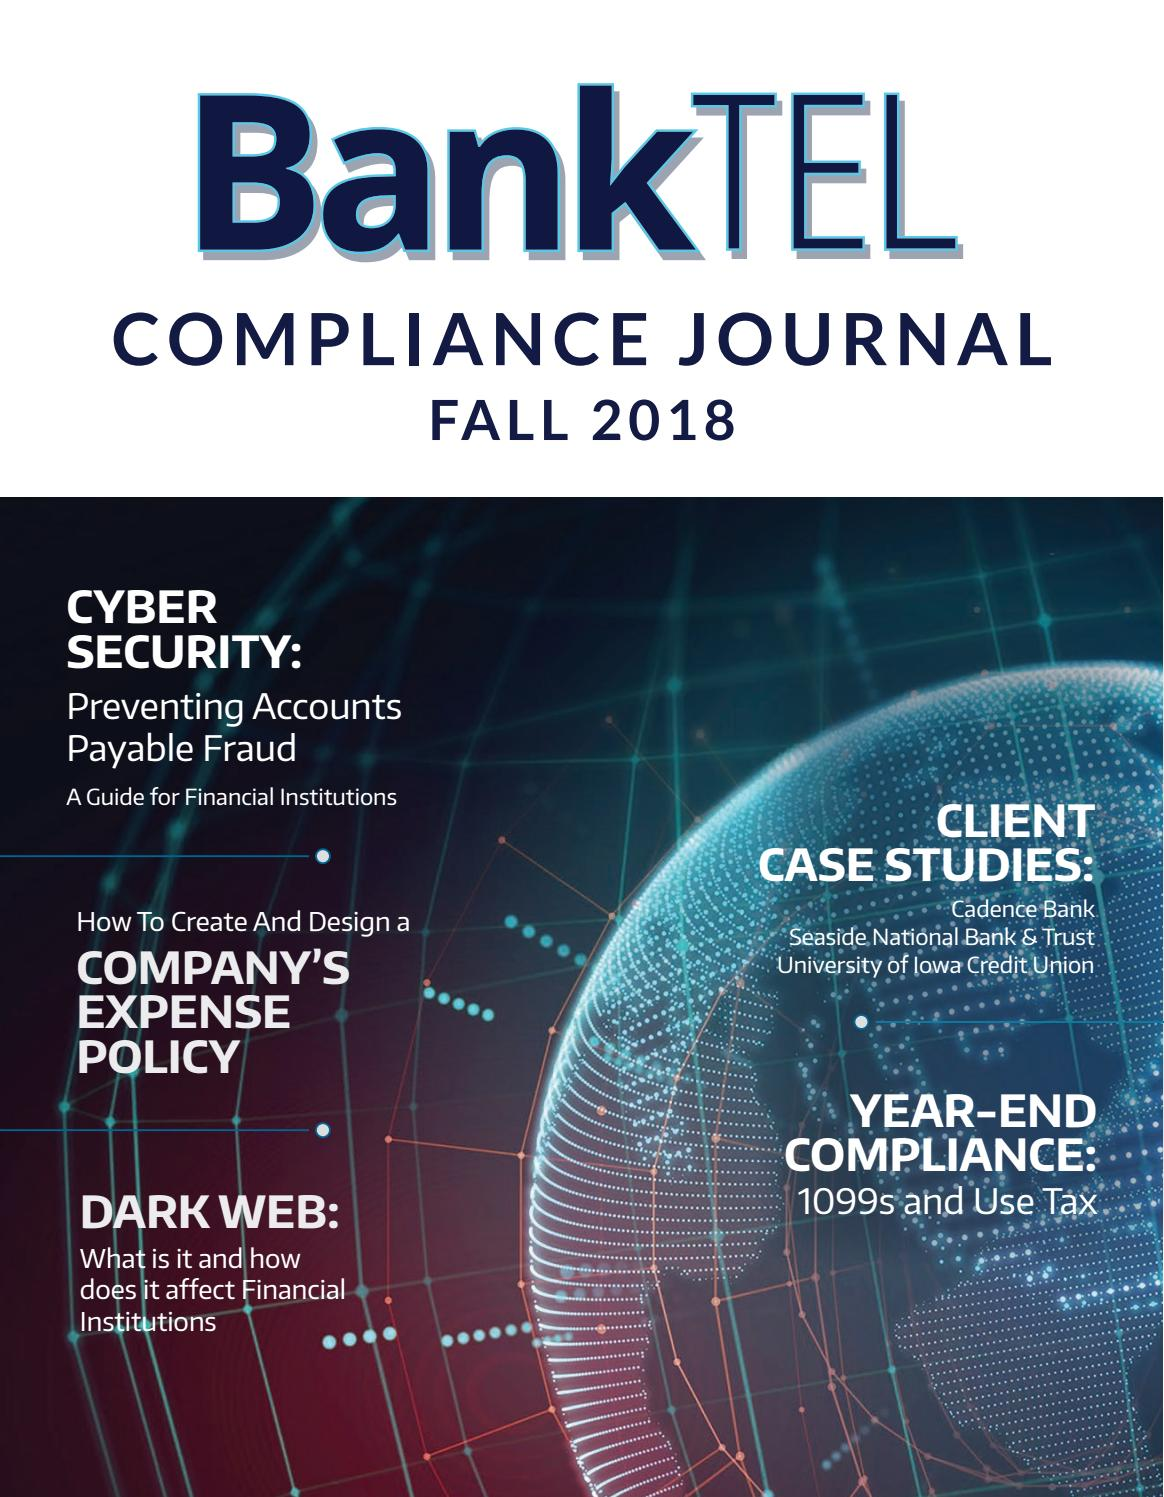 banktel compliance journal by banktel - issuu